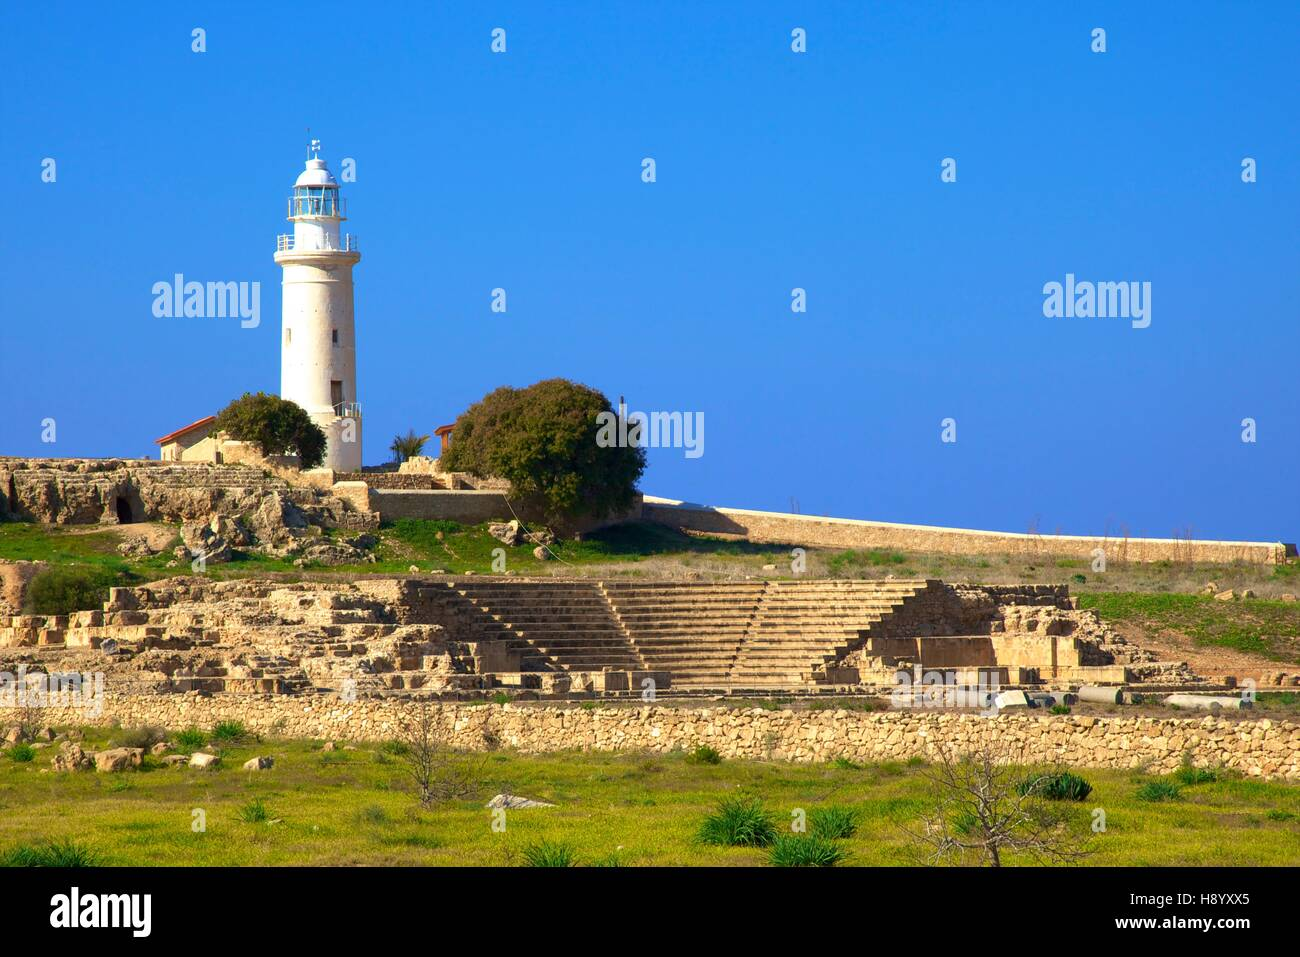 Lighthouse and Roman Odeon, Kato Pathos Archaeological Park, Pathos, Cyprus, Eastern Mediterranean Sea - Stock Image